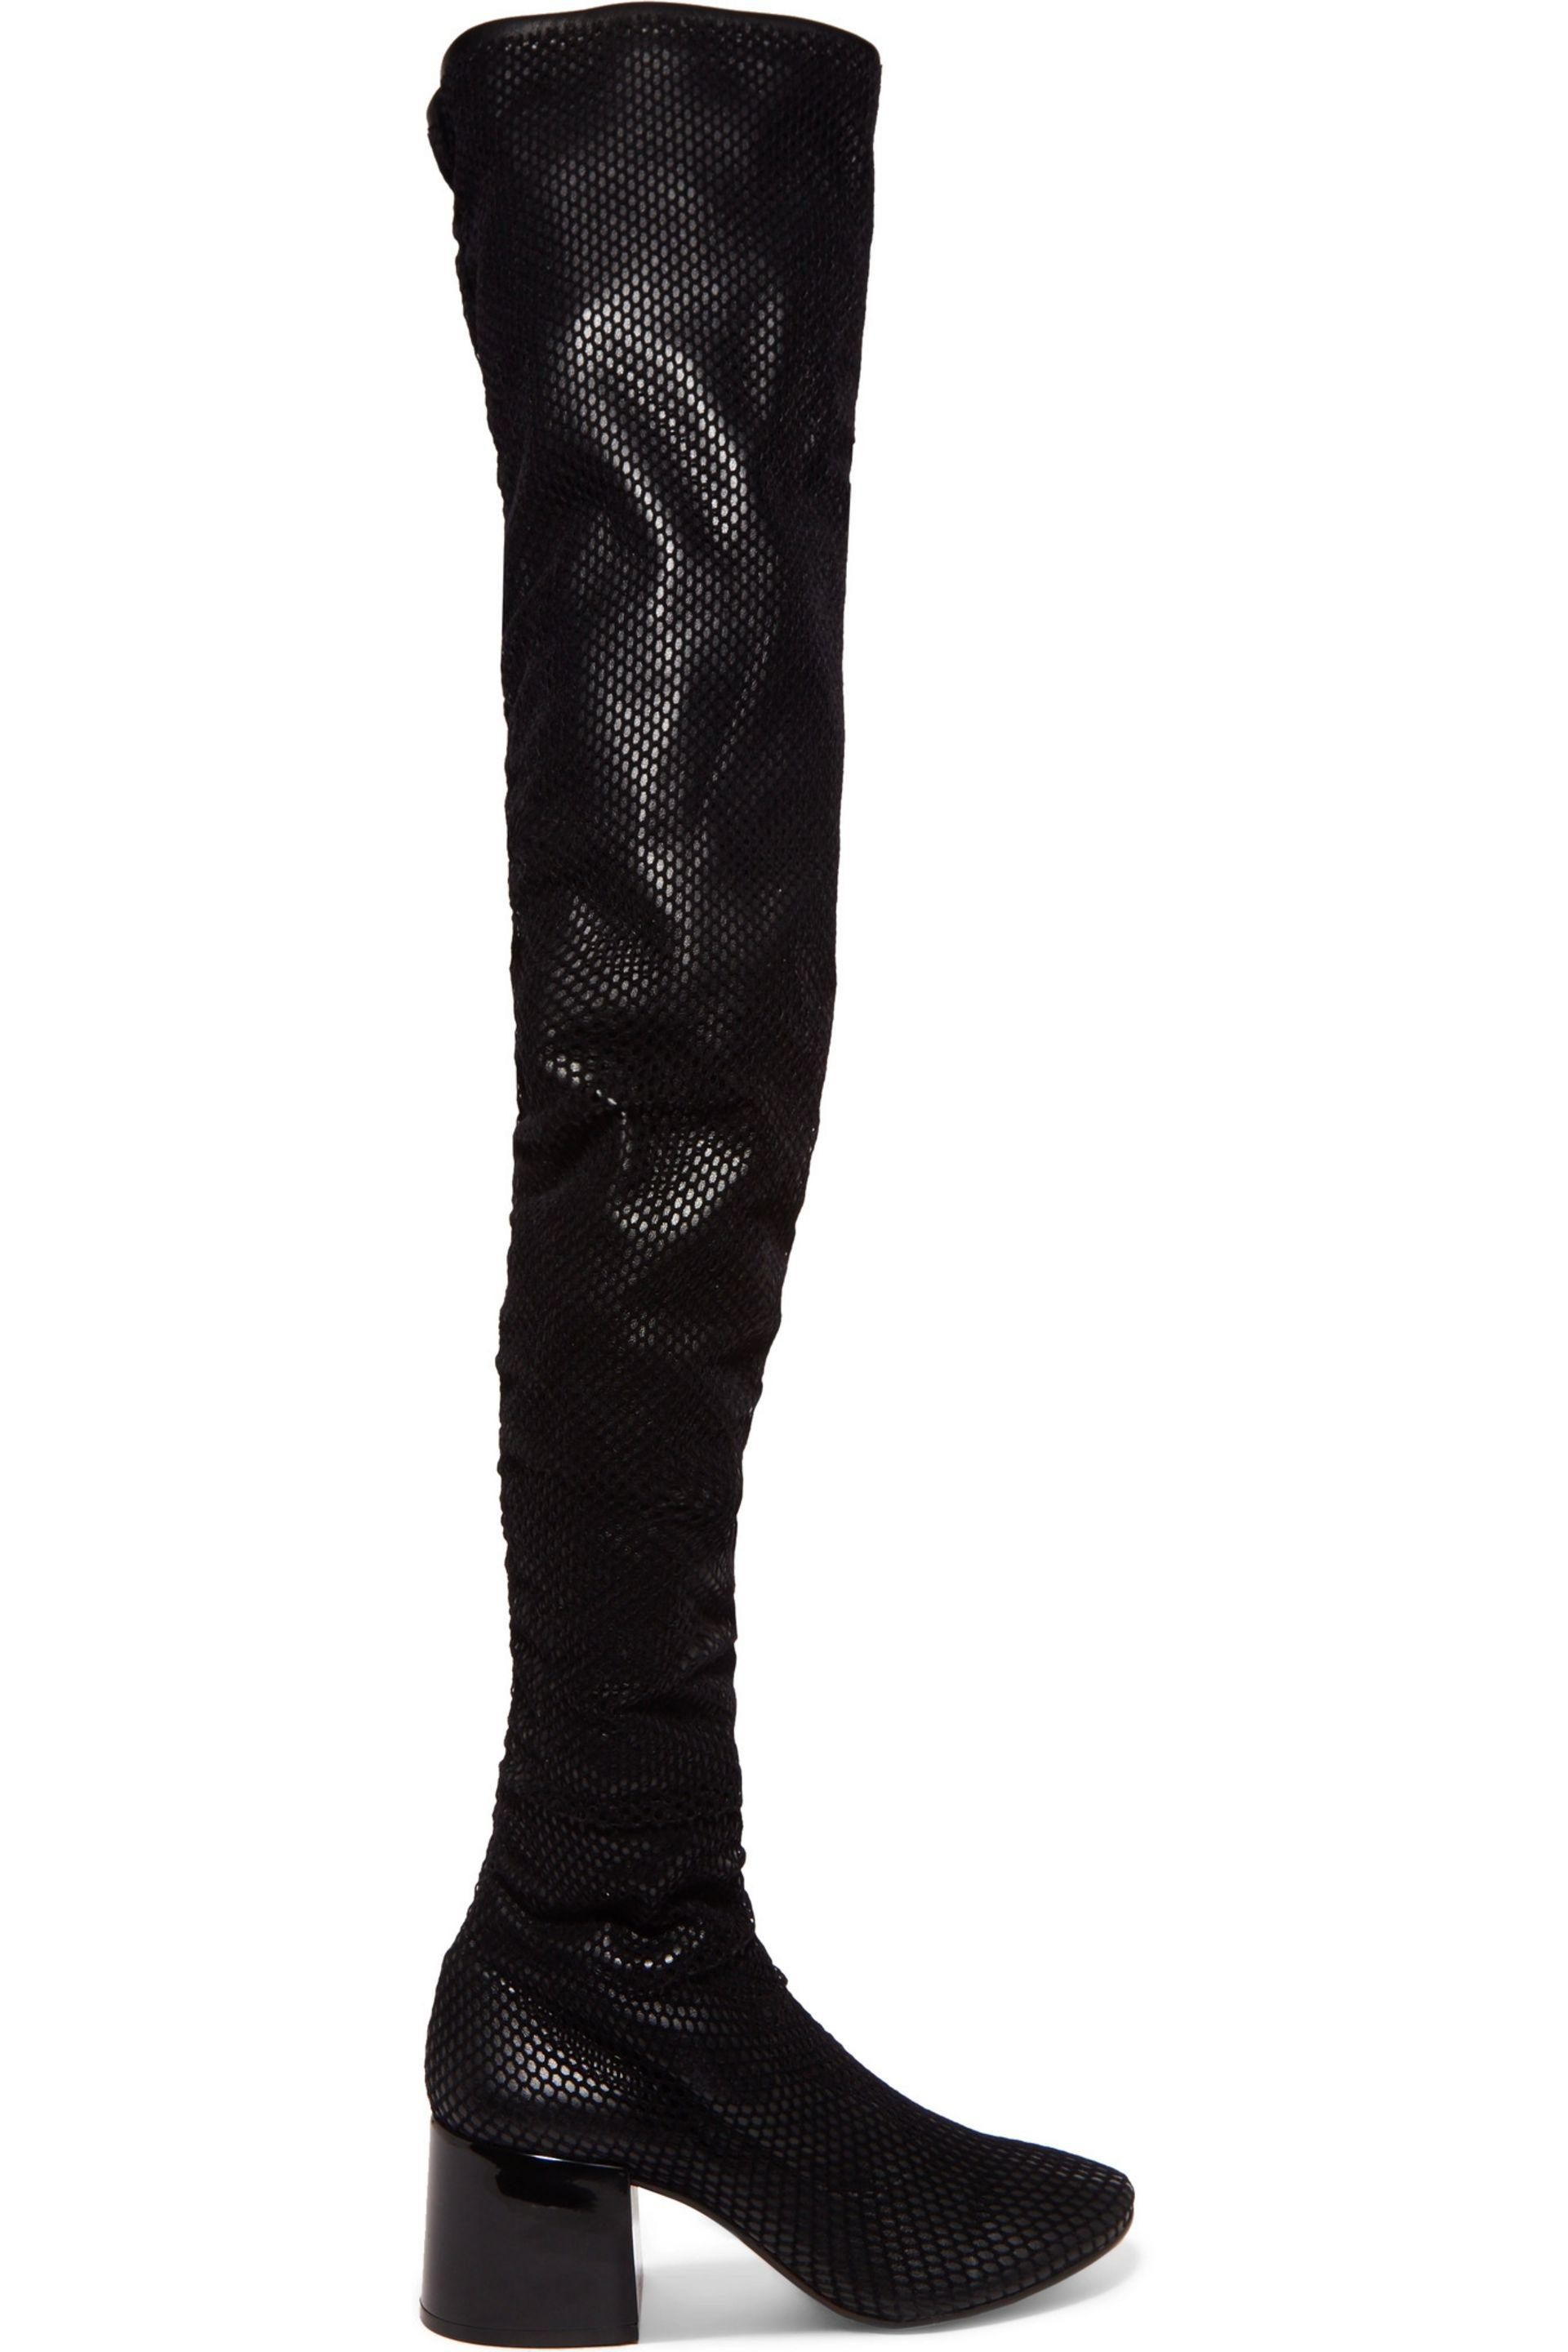 MM6 Maison Martin Margiela Black Mesh Thigh-High Boots GulJ0